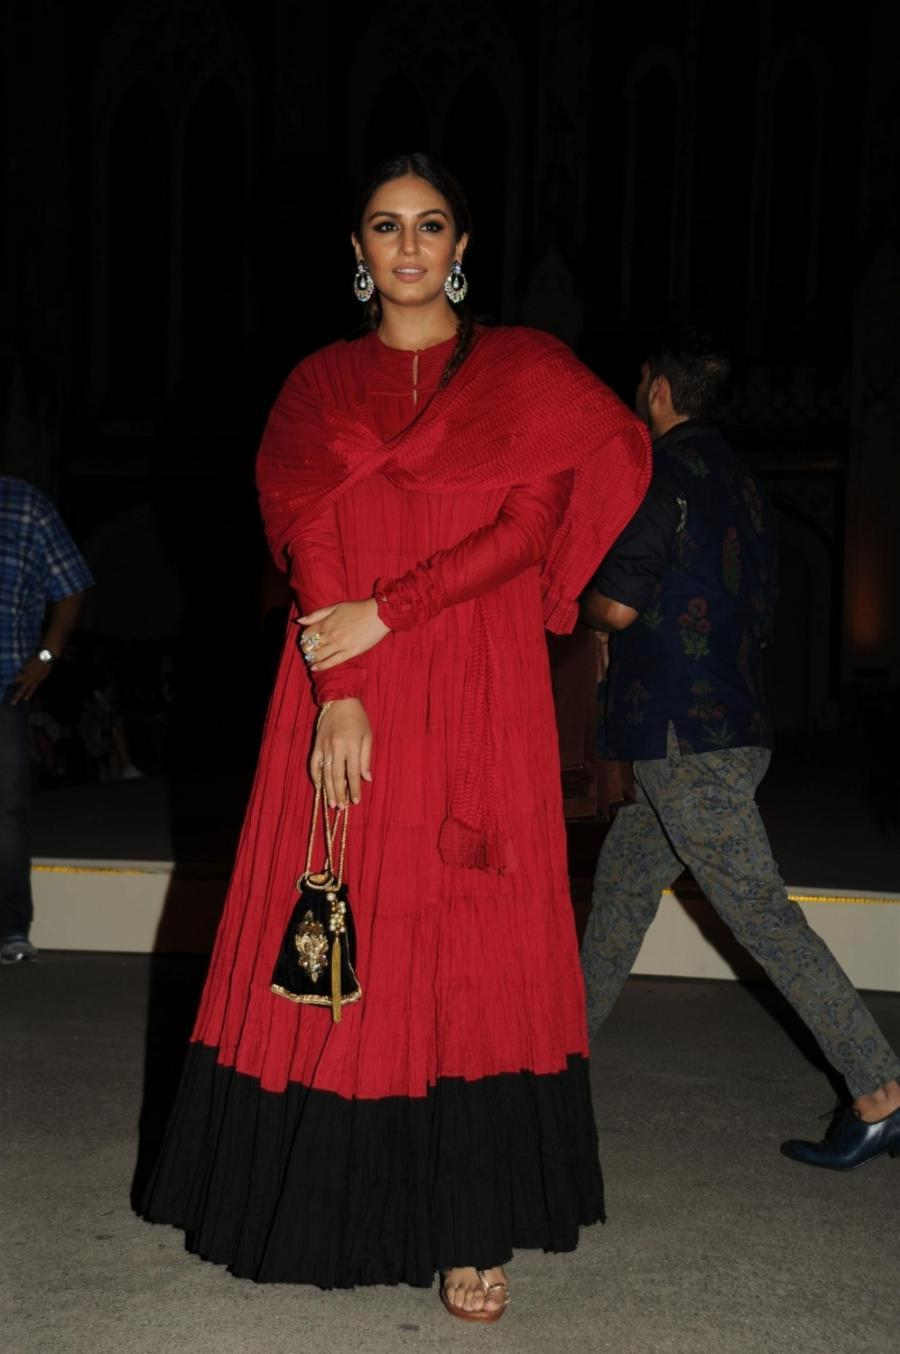 Mumbai Hot Girl Huma Qureshi In Red Dress At Lakme Fashion Week Summer Resort